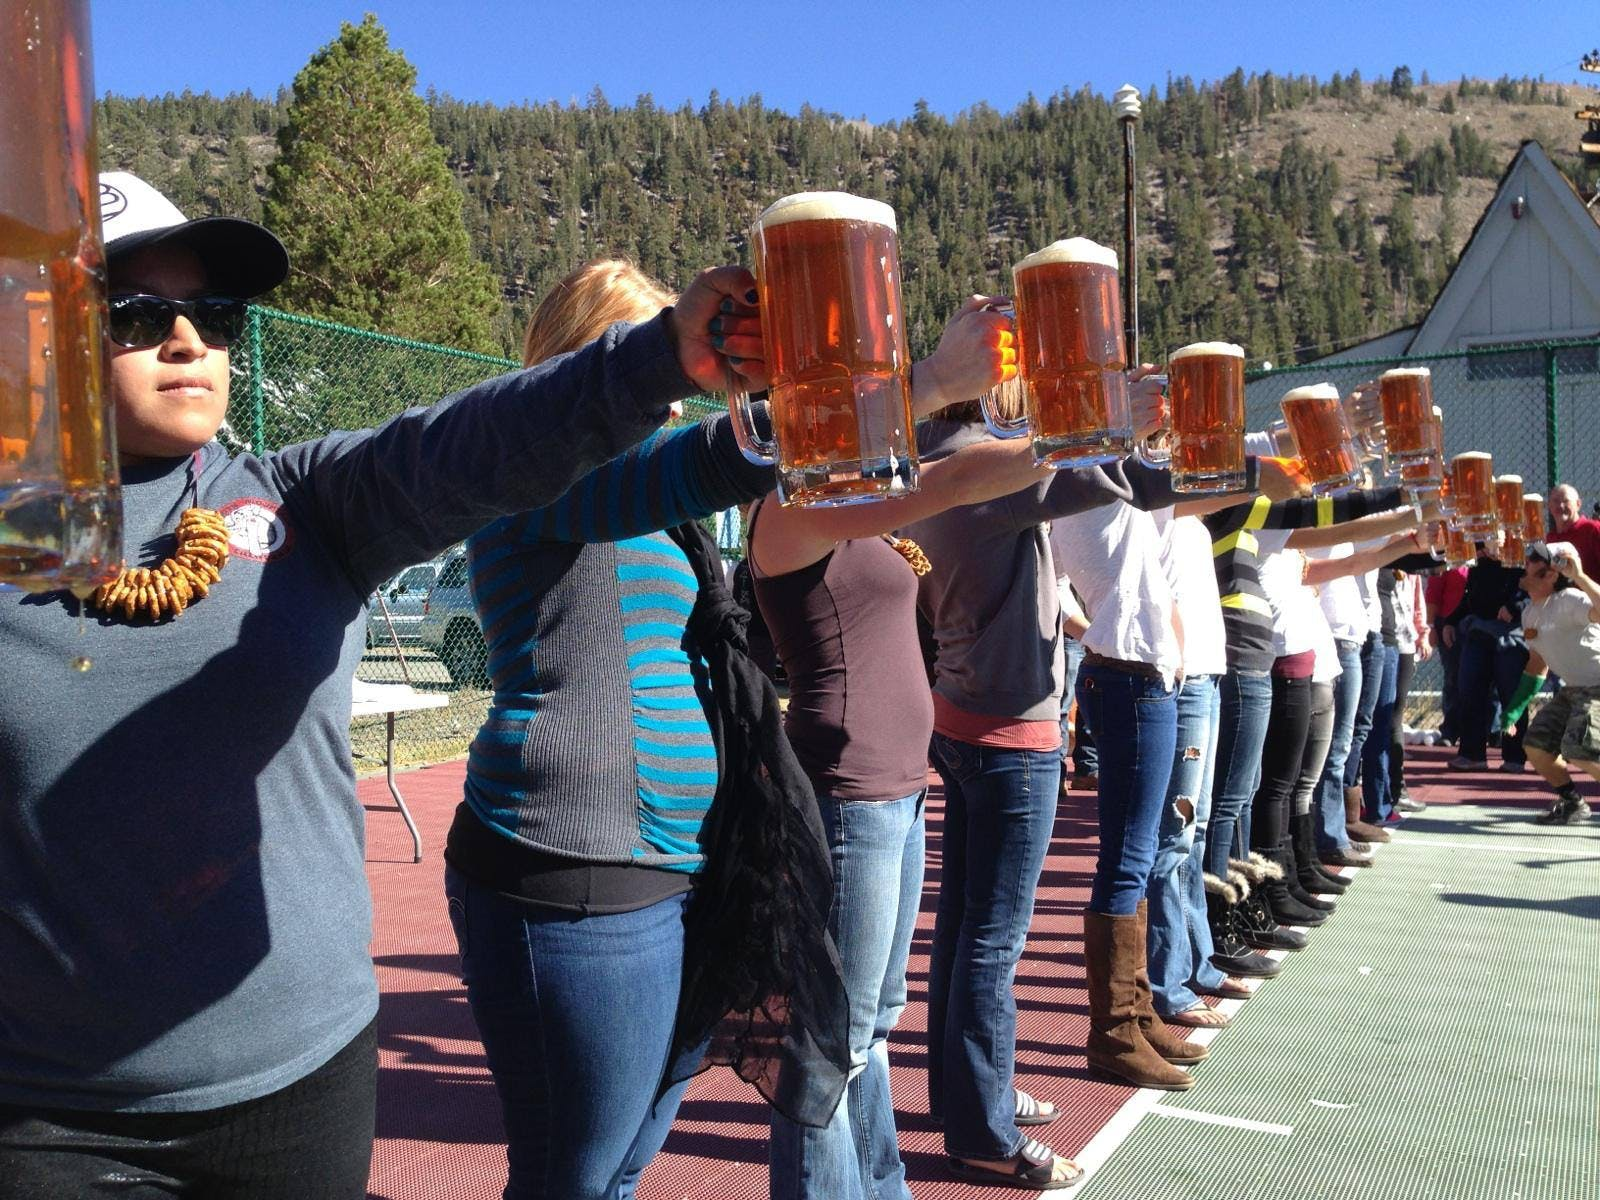 June Lake Autumn Beer Fest